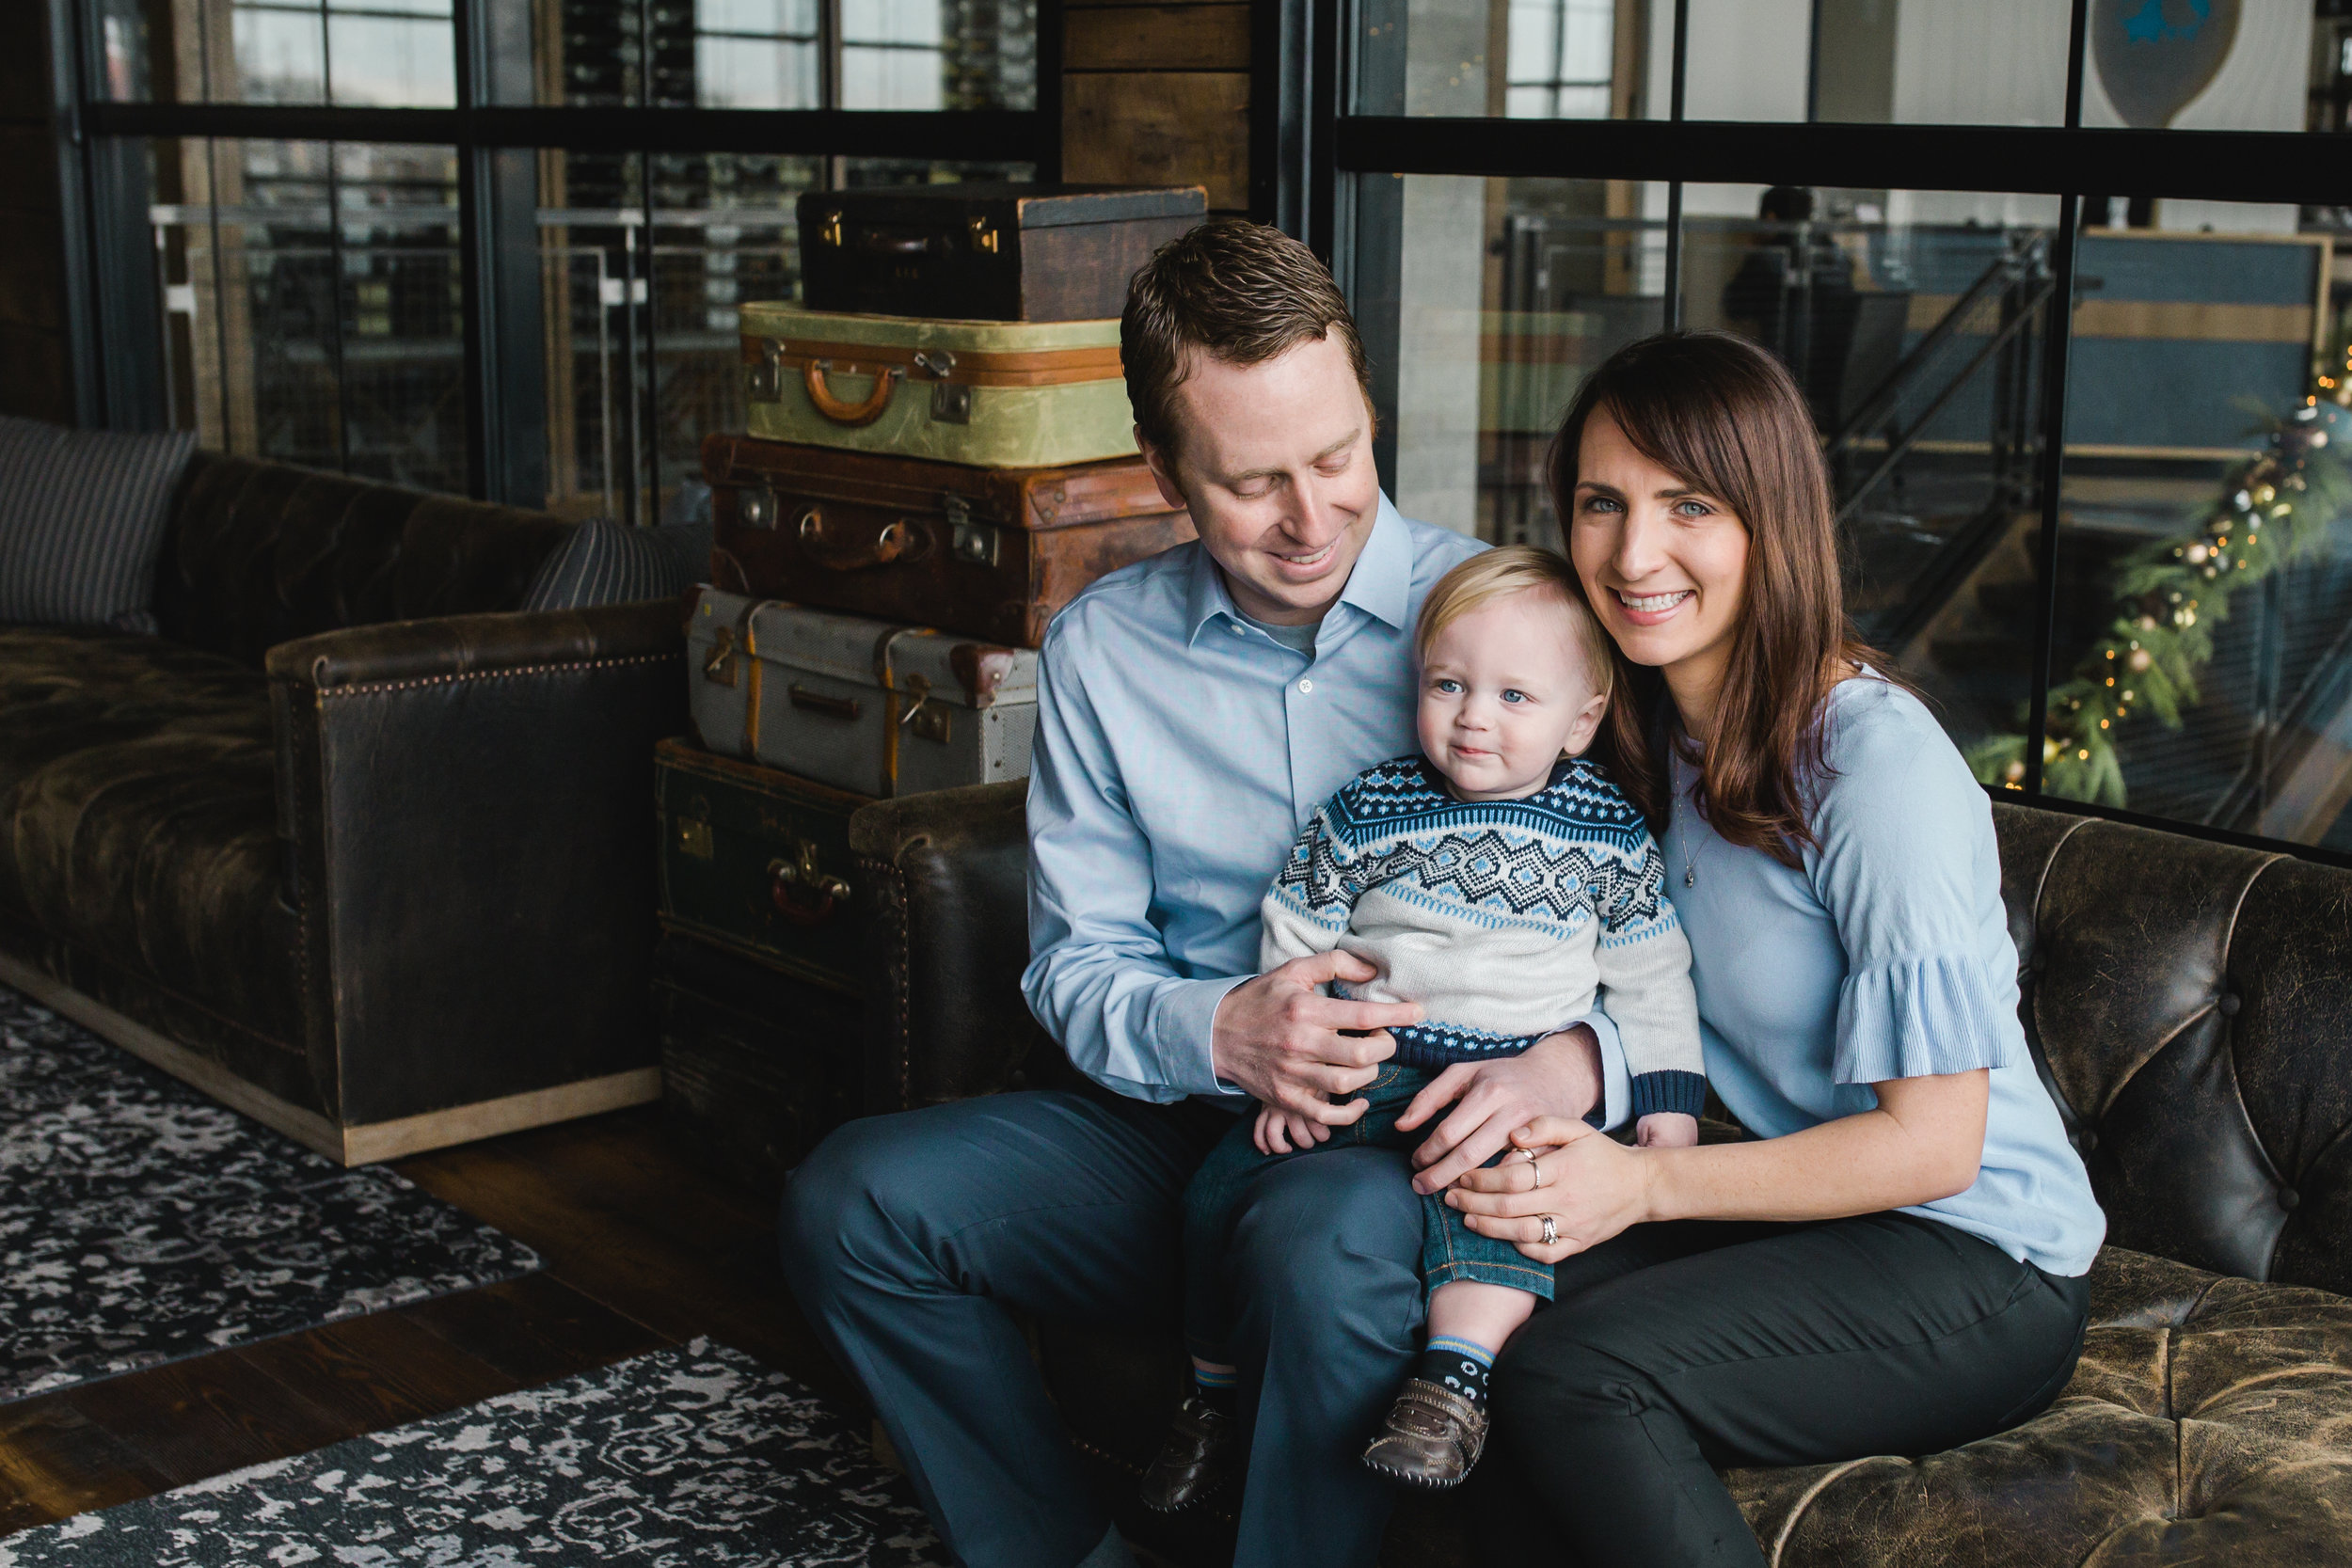 Indianapolis Family posed for family photography in Hotel Lobby